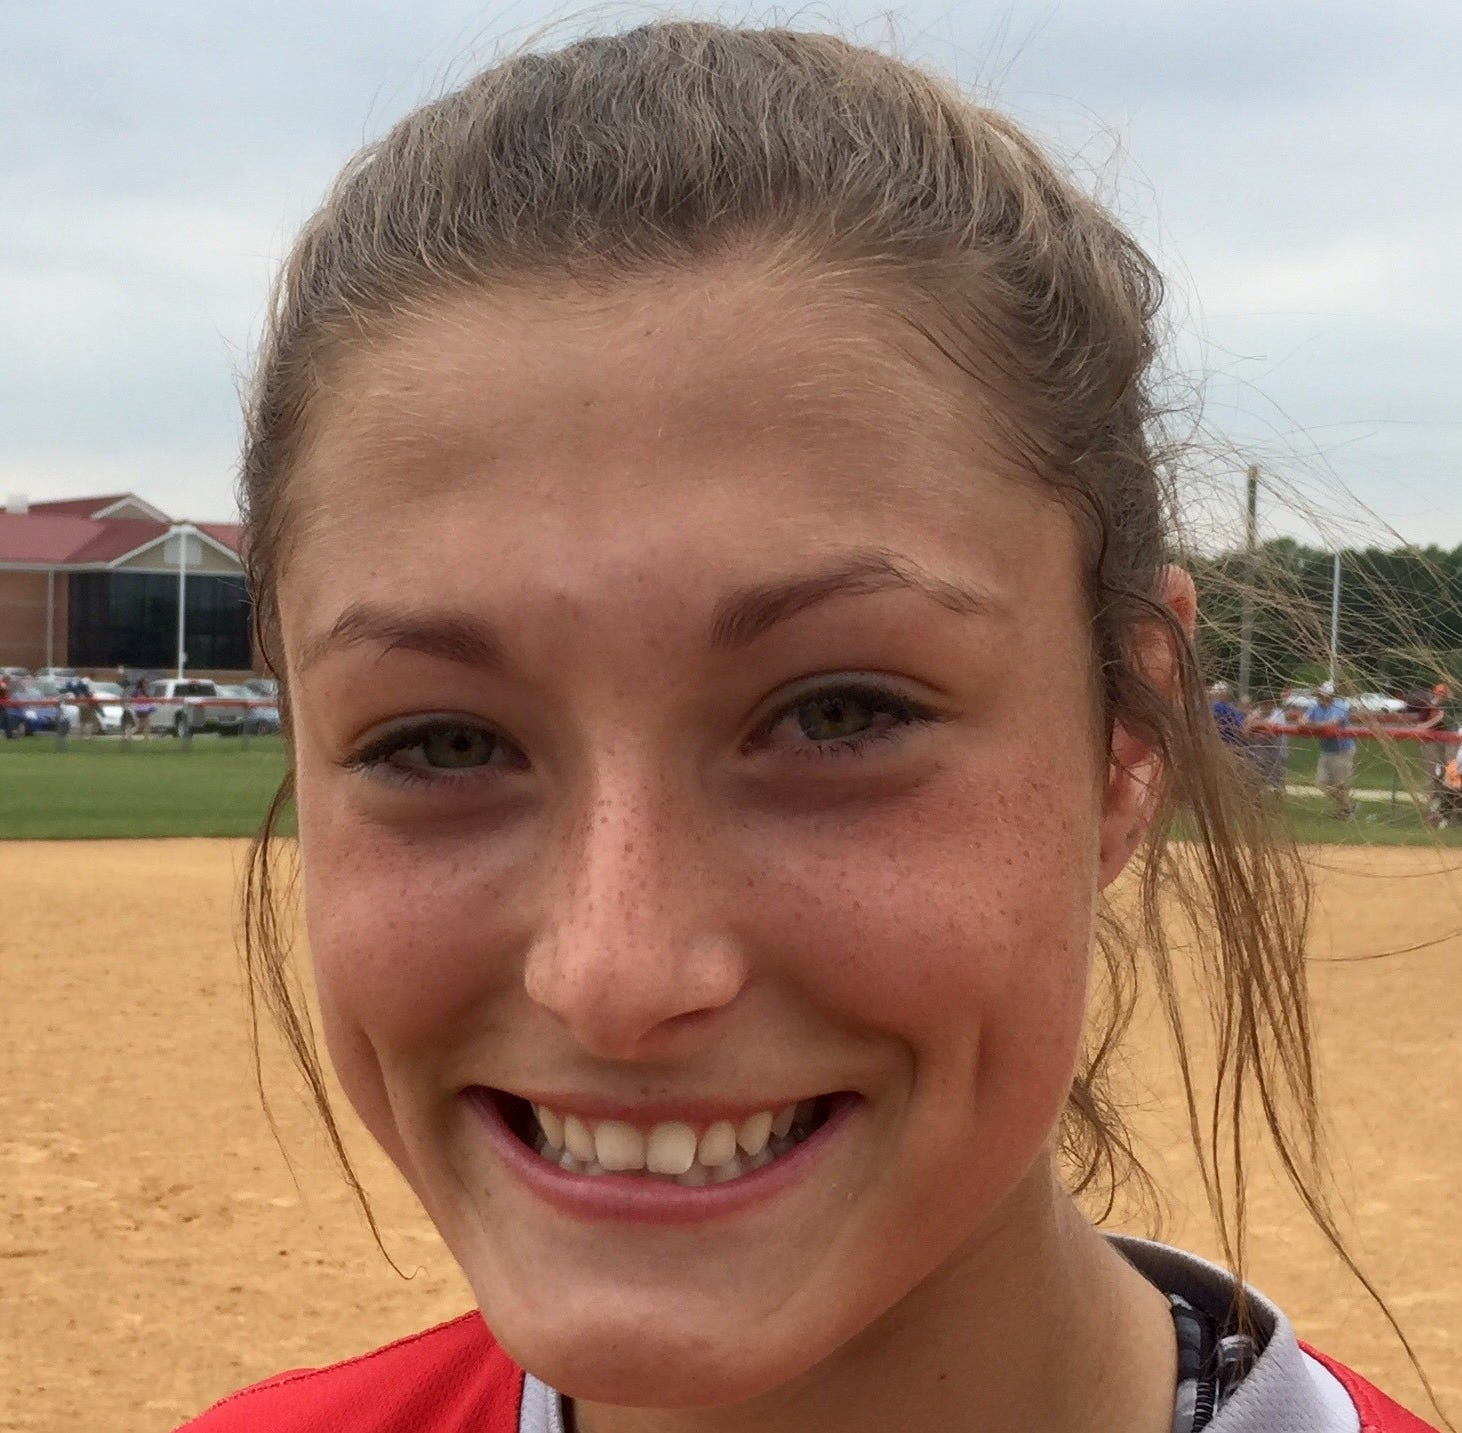 No-hitter pushes Smyrna past St. Georges in DIAA Softball quarterfinals